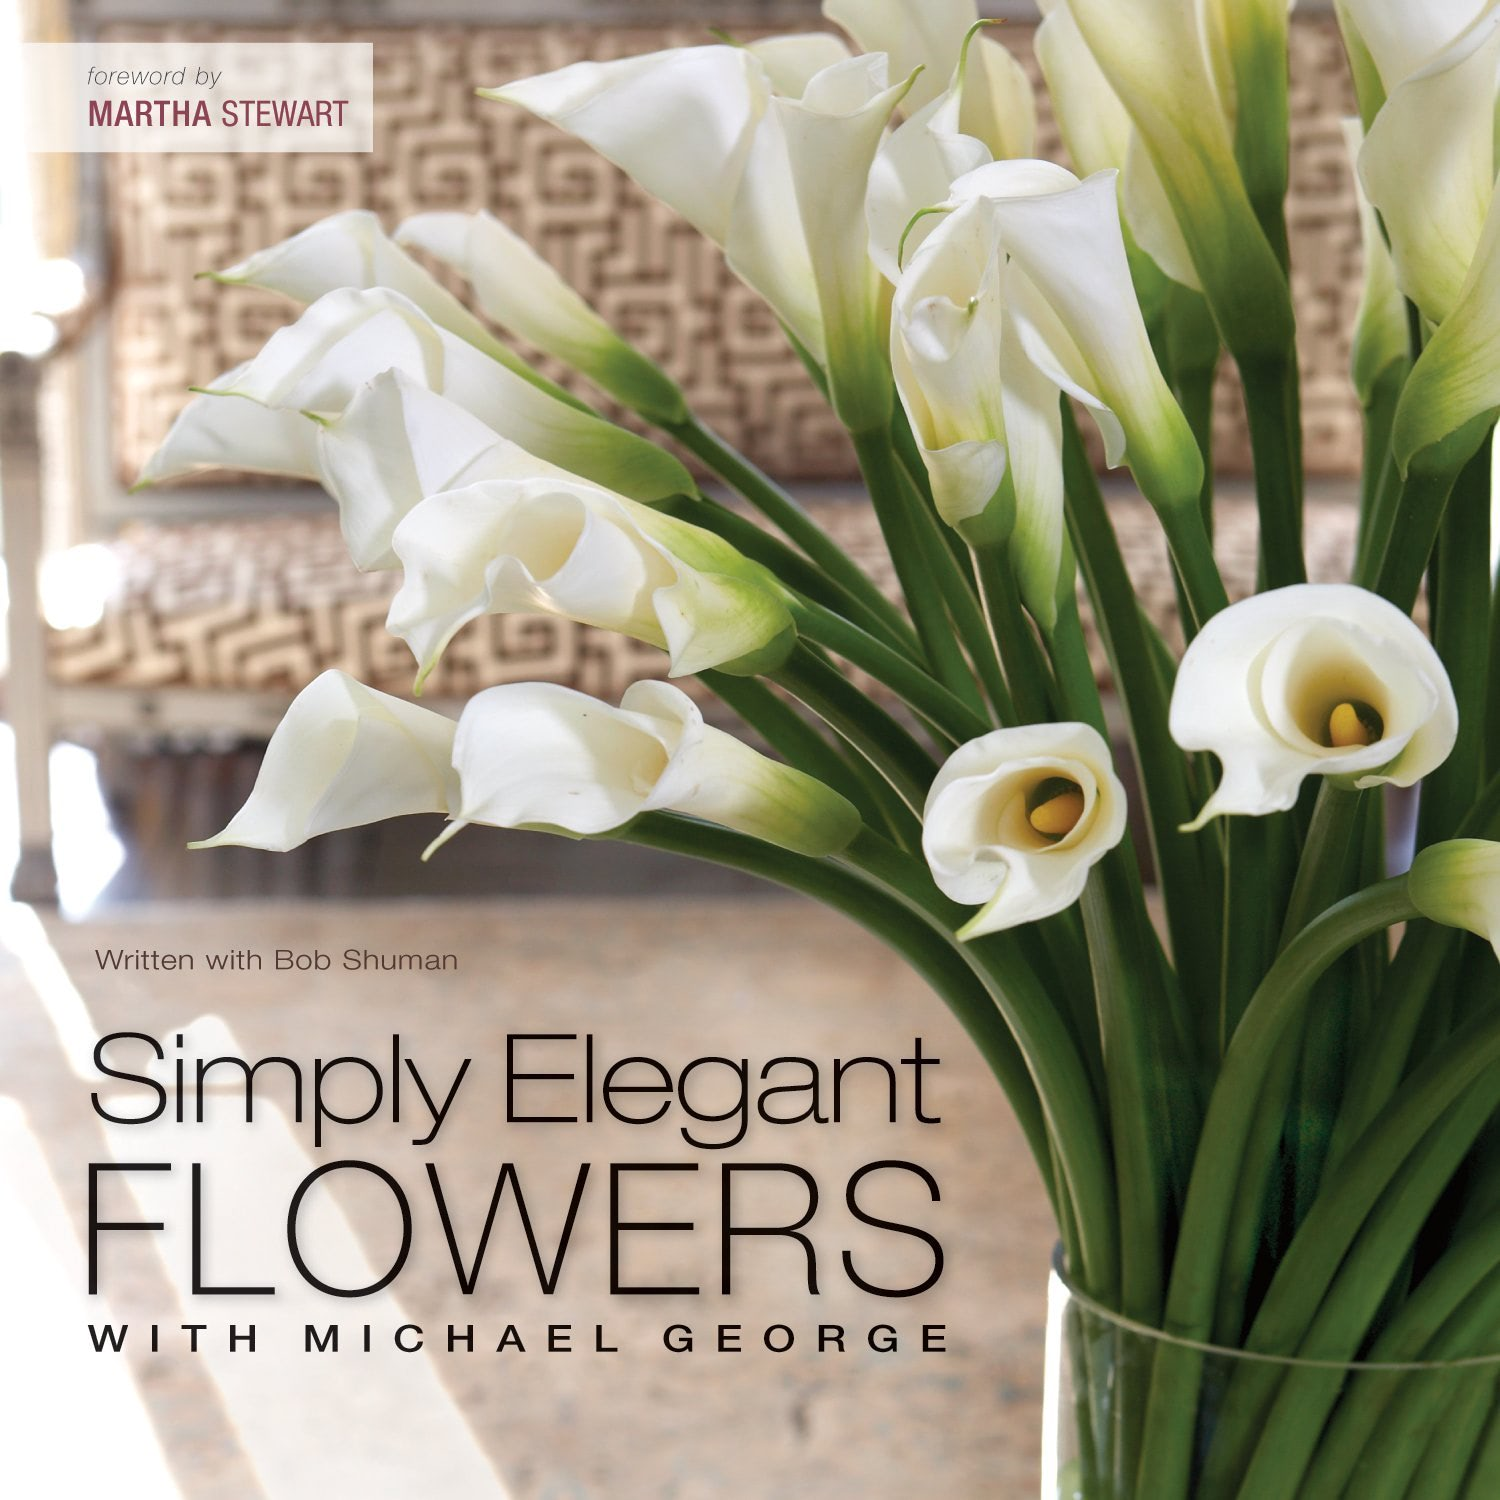 Simply Elegant Flowers With Michael George and Bob Shuman by Michael George and